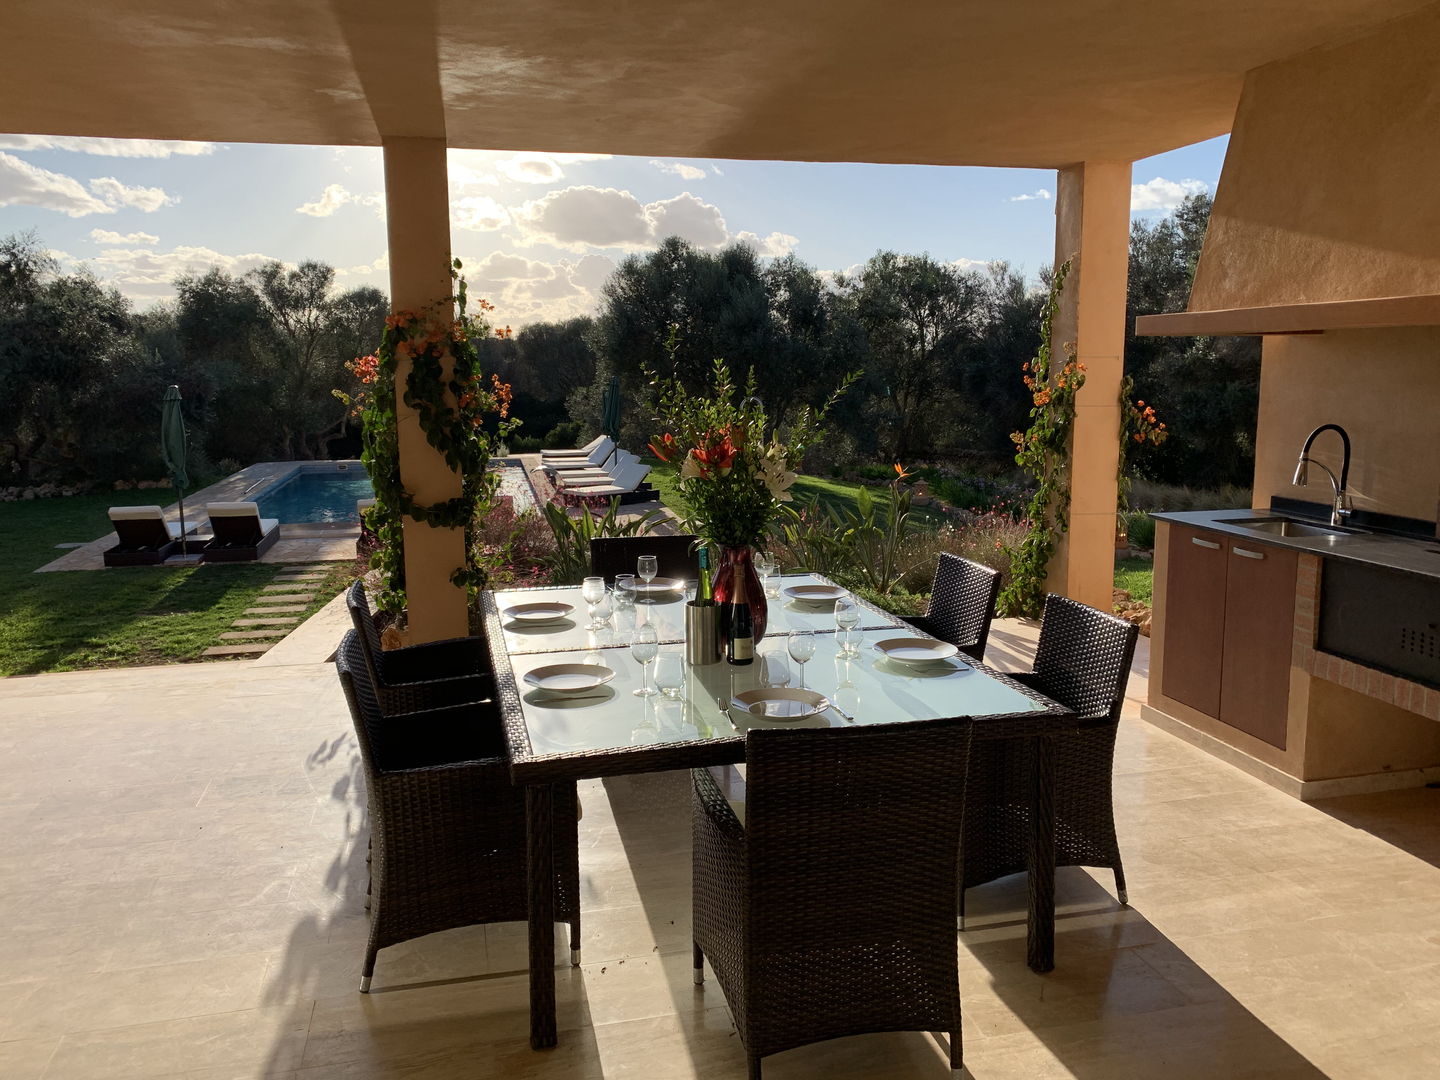 Outside dining area with barbecue